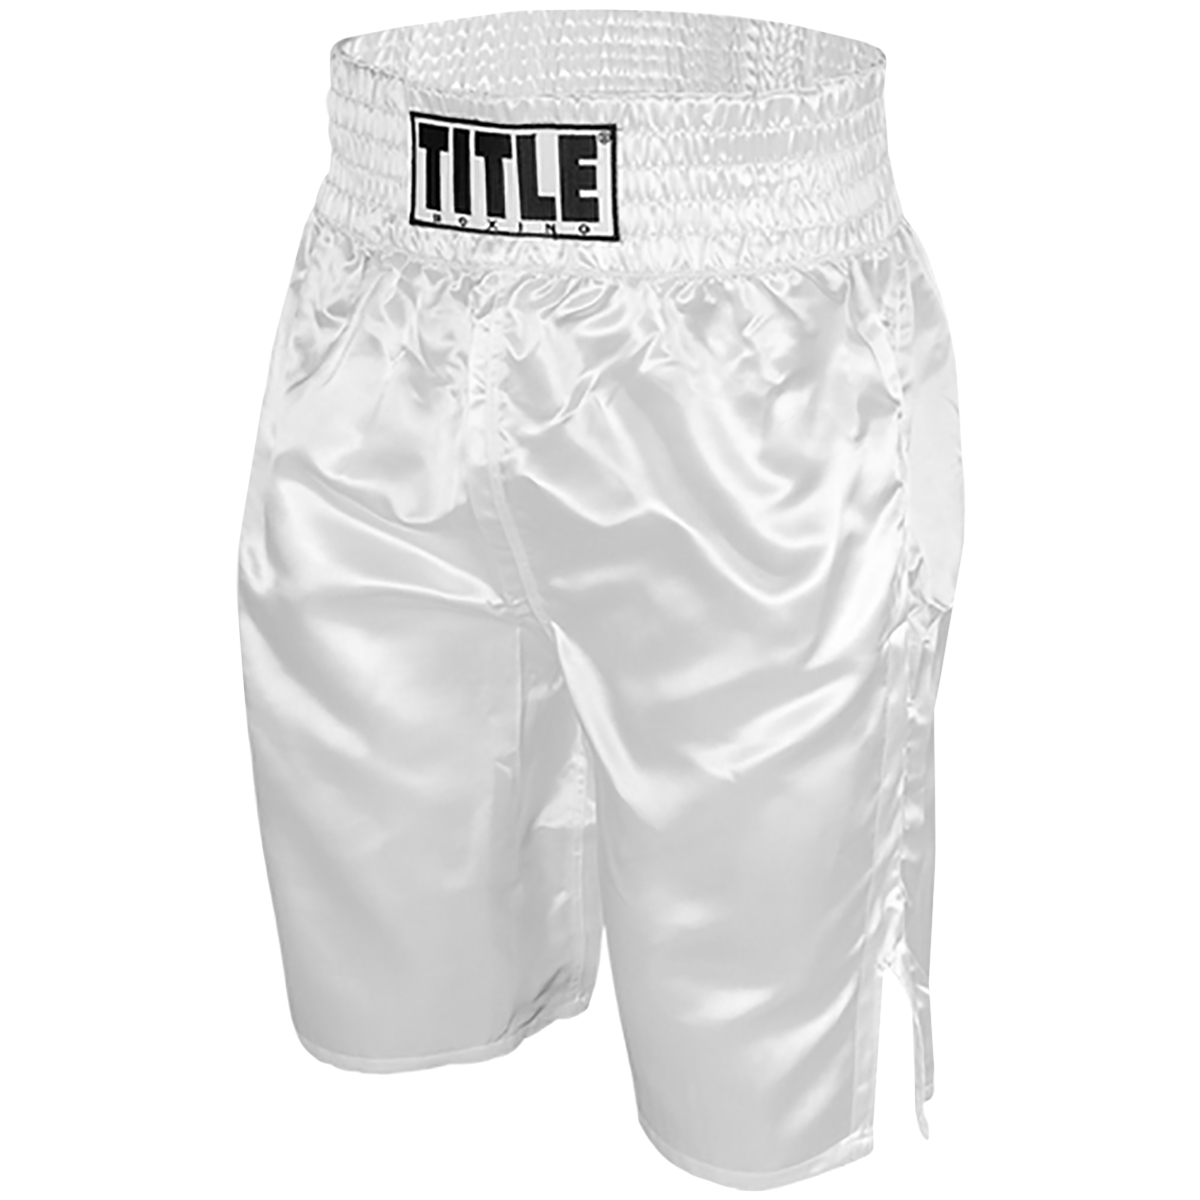 Title Professional Boxing Trunks - White